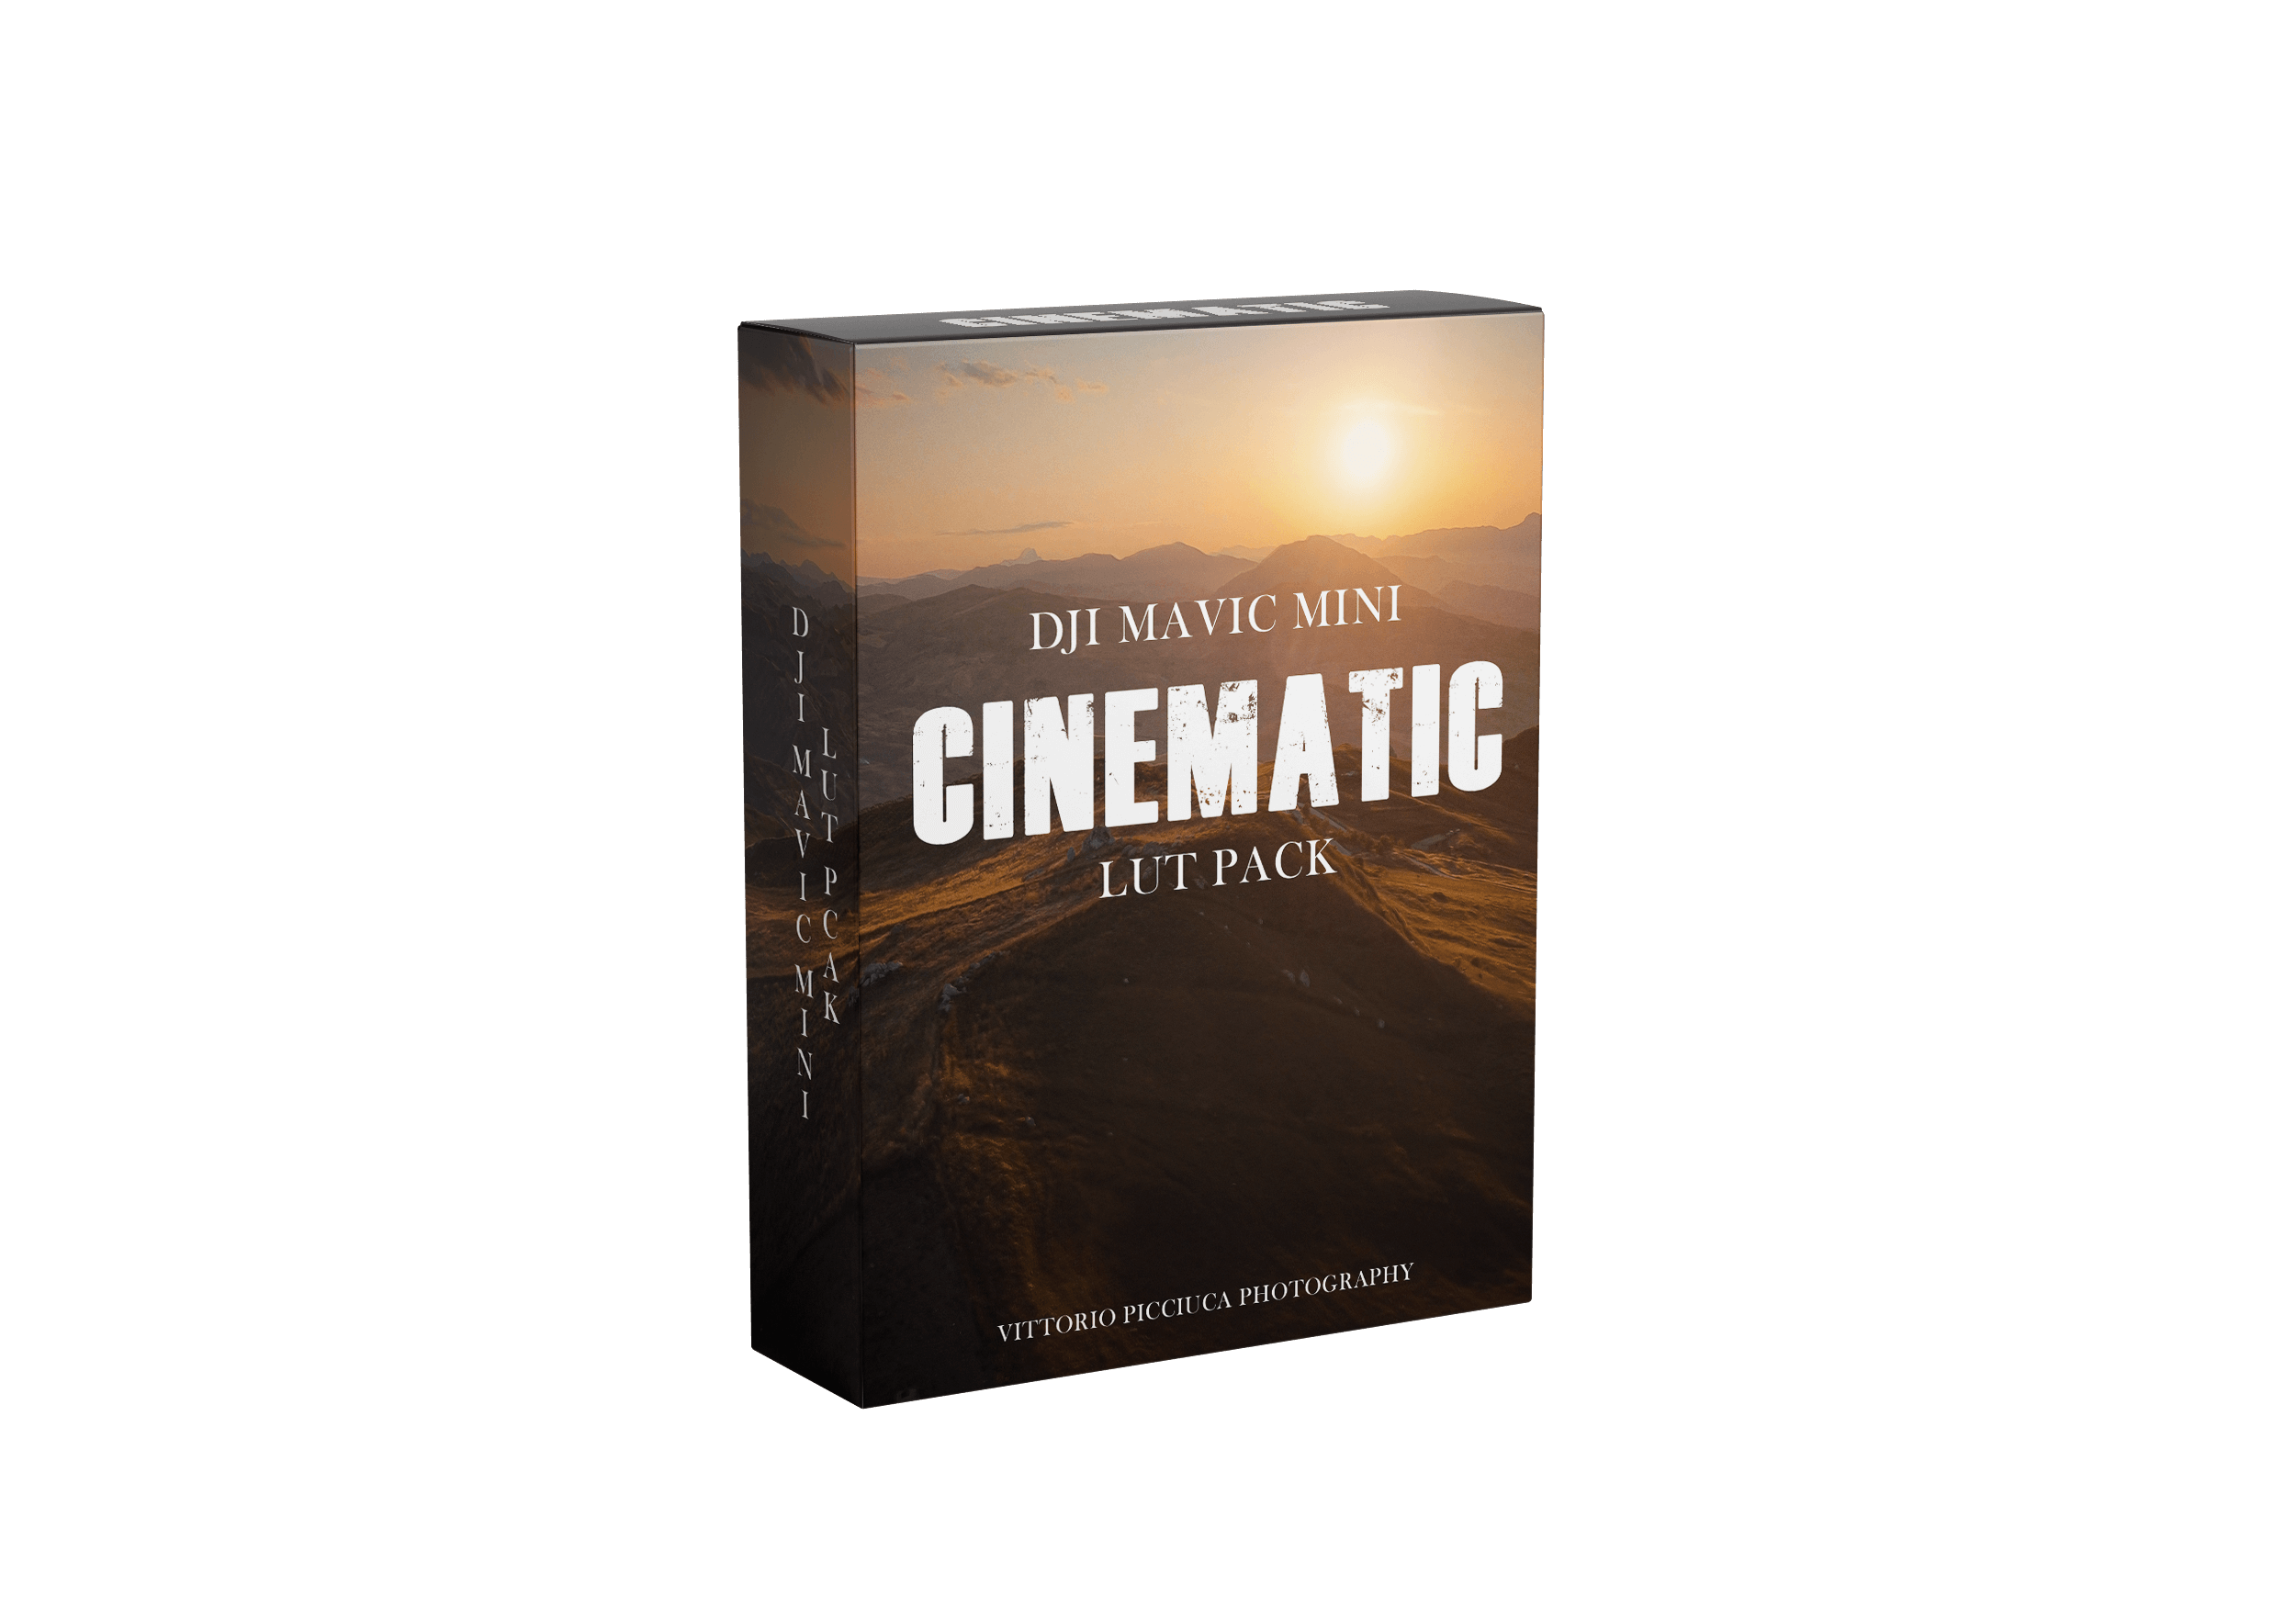 Mavic Mini Cinematic Lut Pack